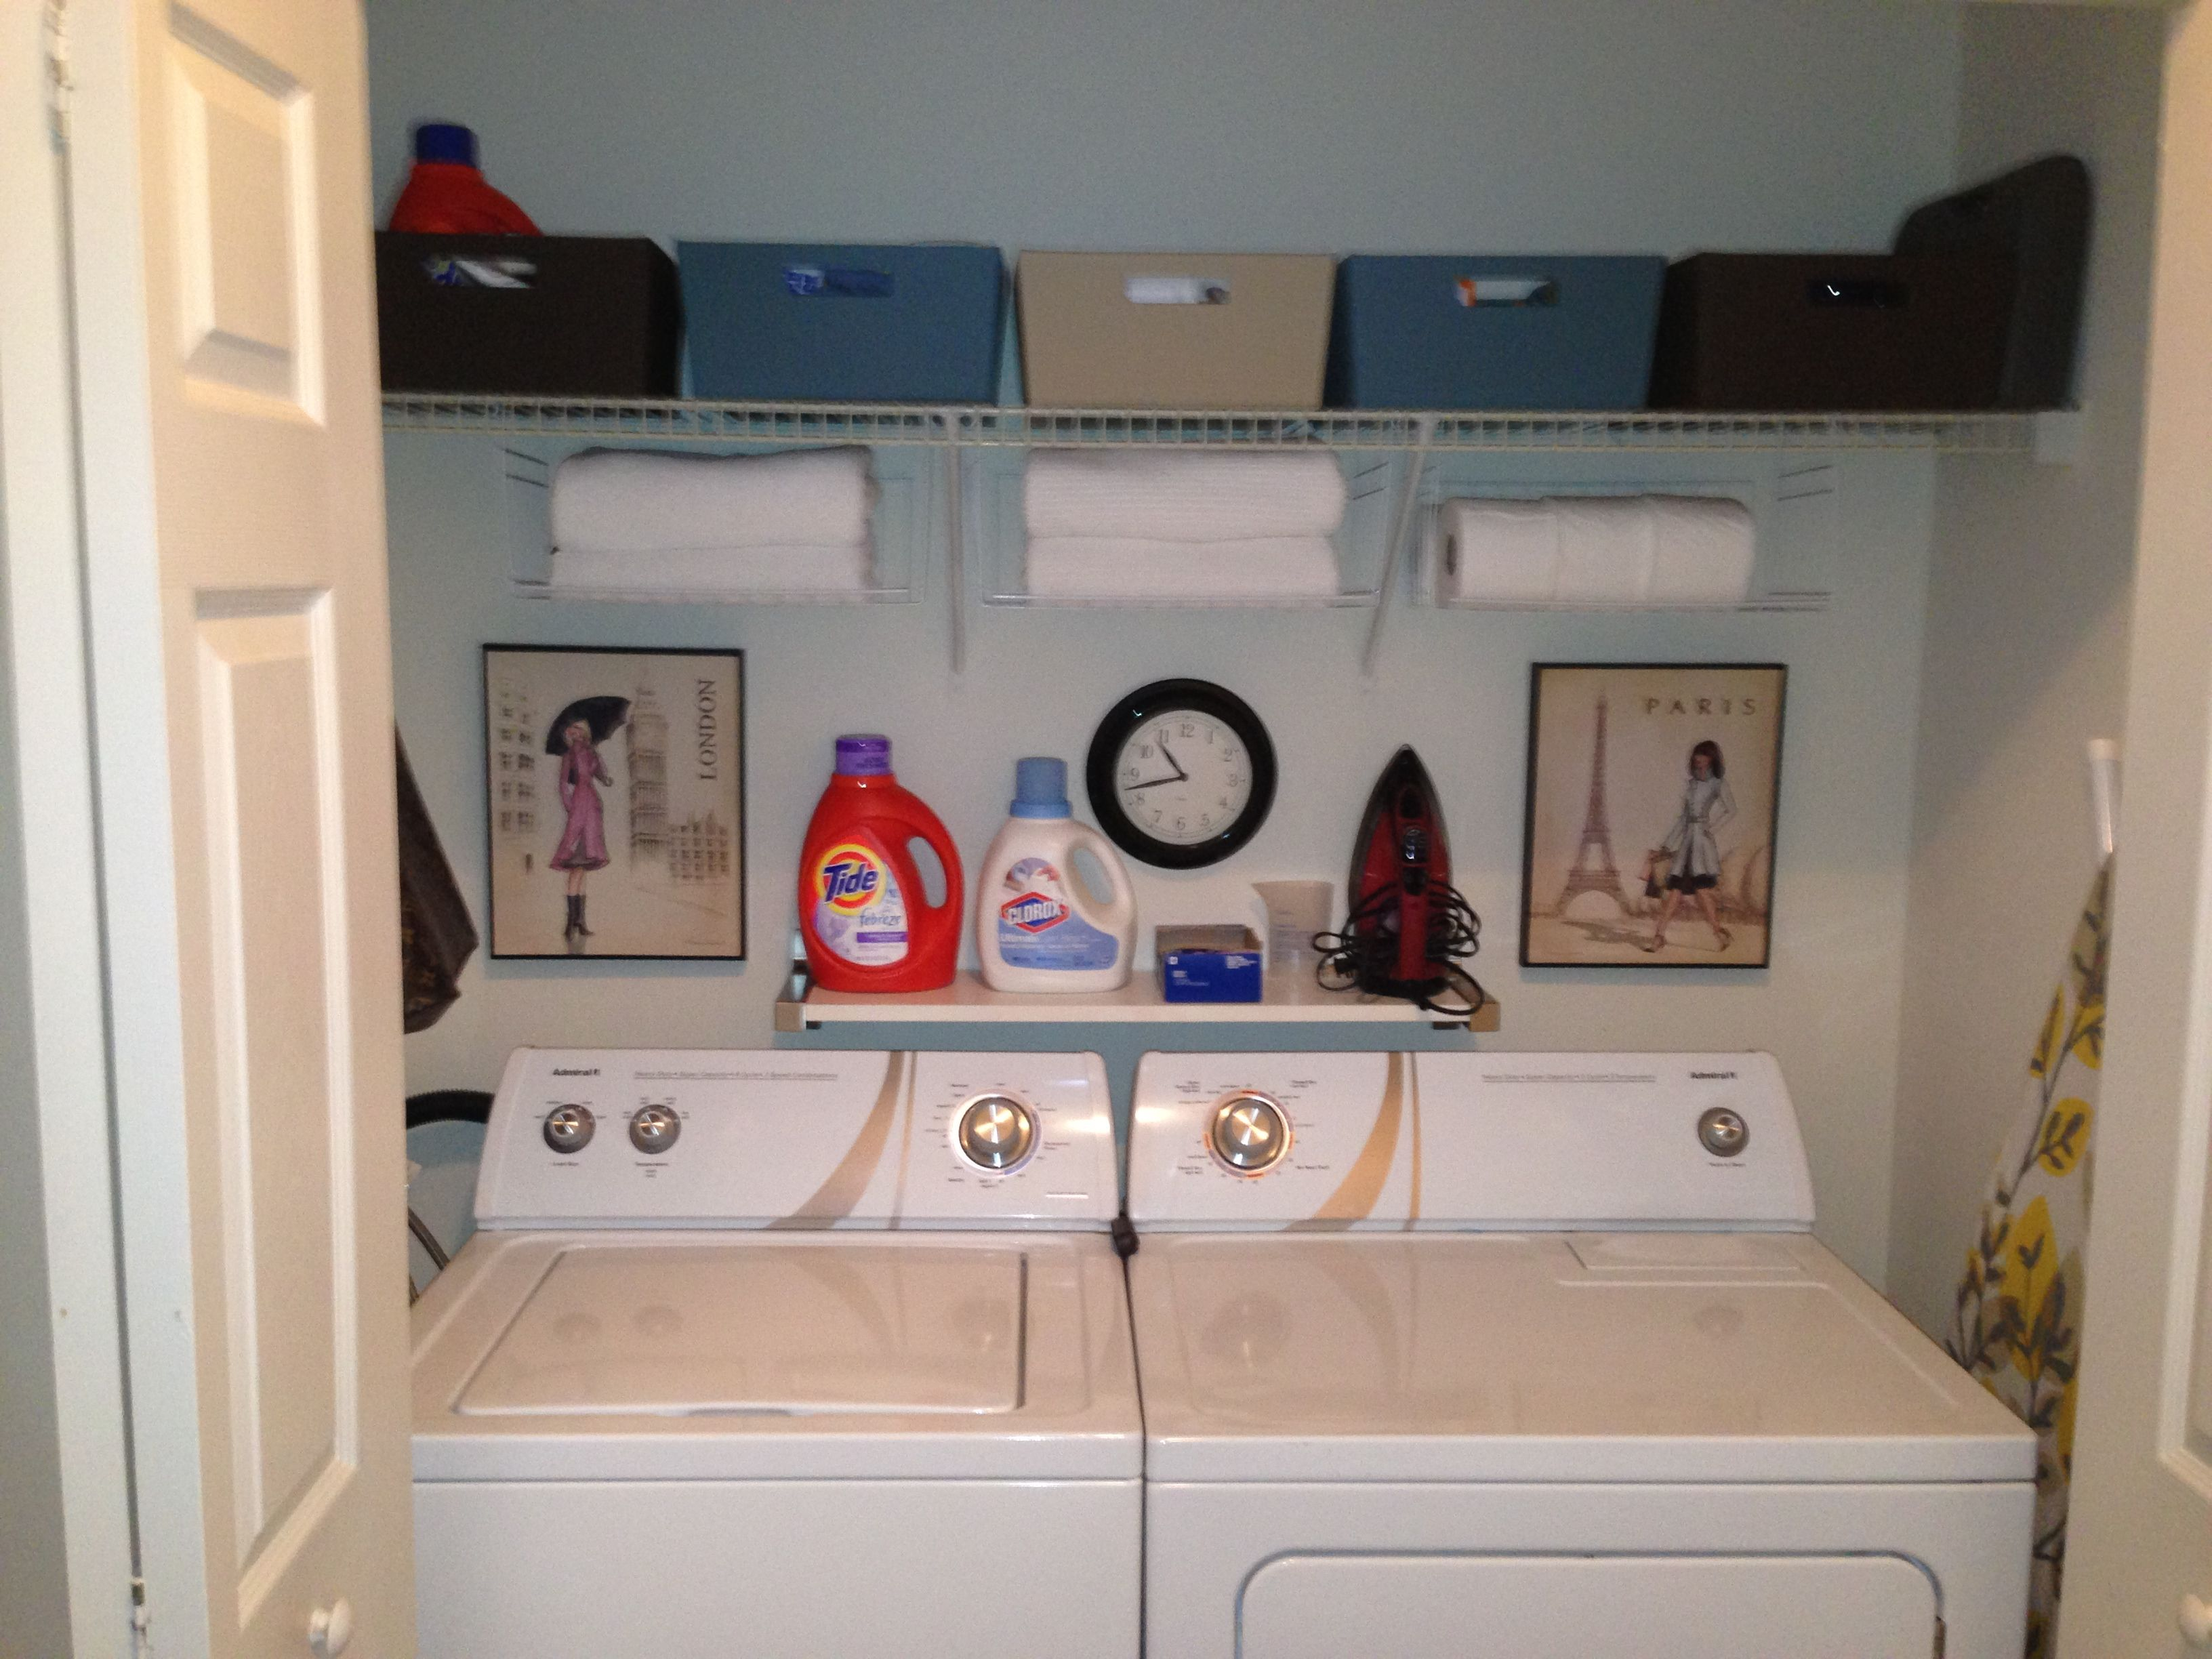 Apartment Laundry Room Organization I Like The Little Shelf And The Bins On Top Use For Stora Apartment Laundry Room Dream Laundry Room Apartment Organization